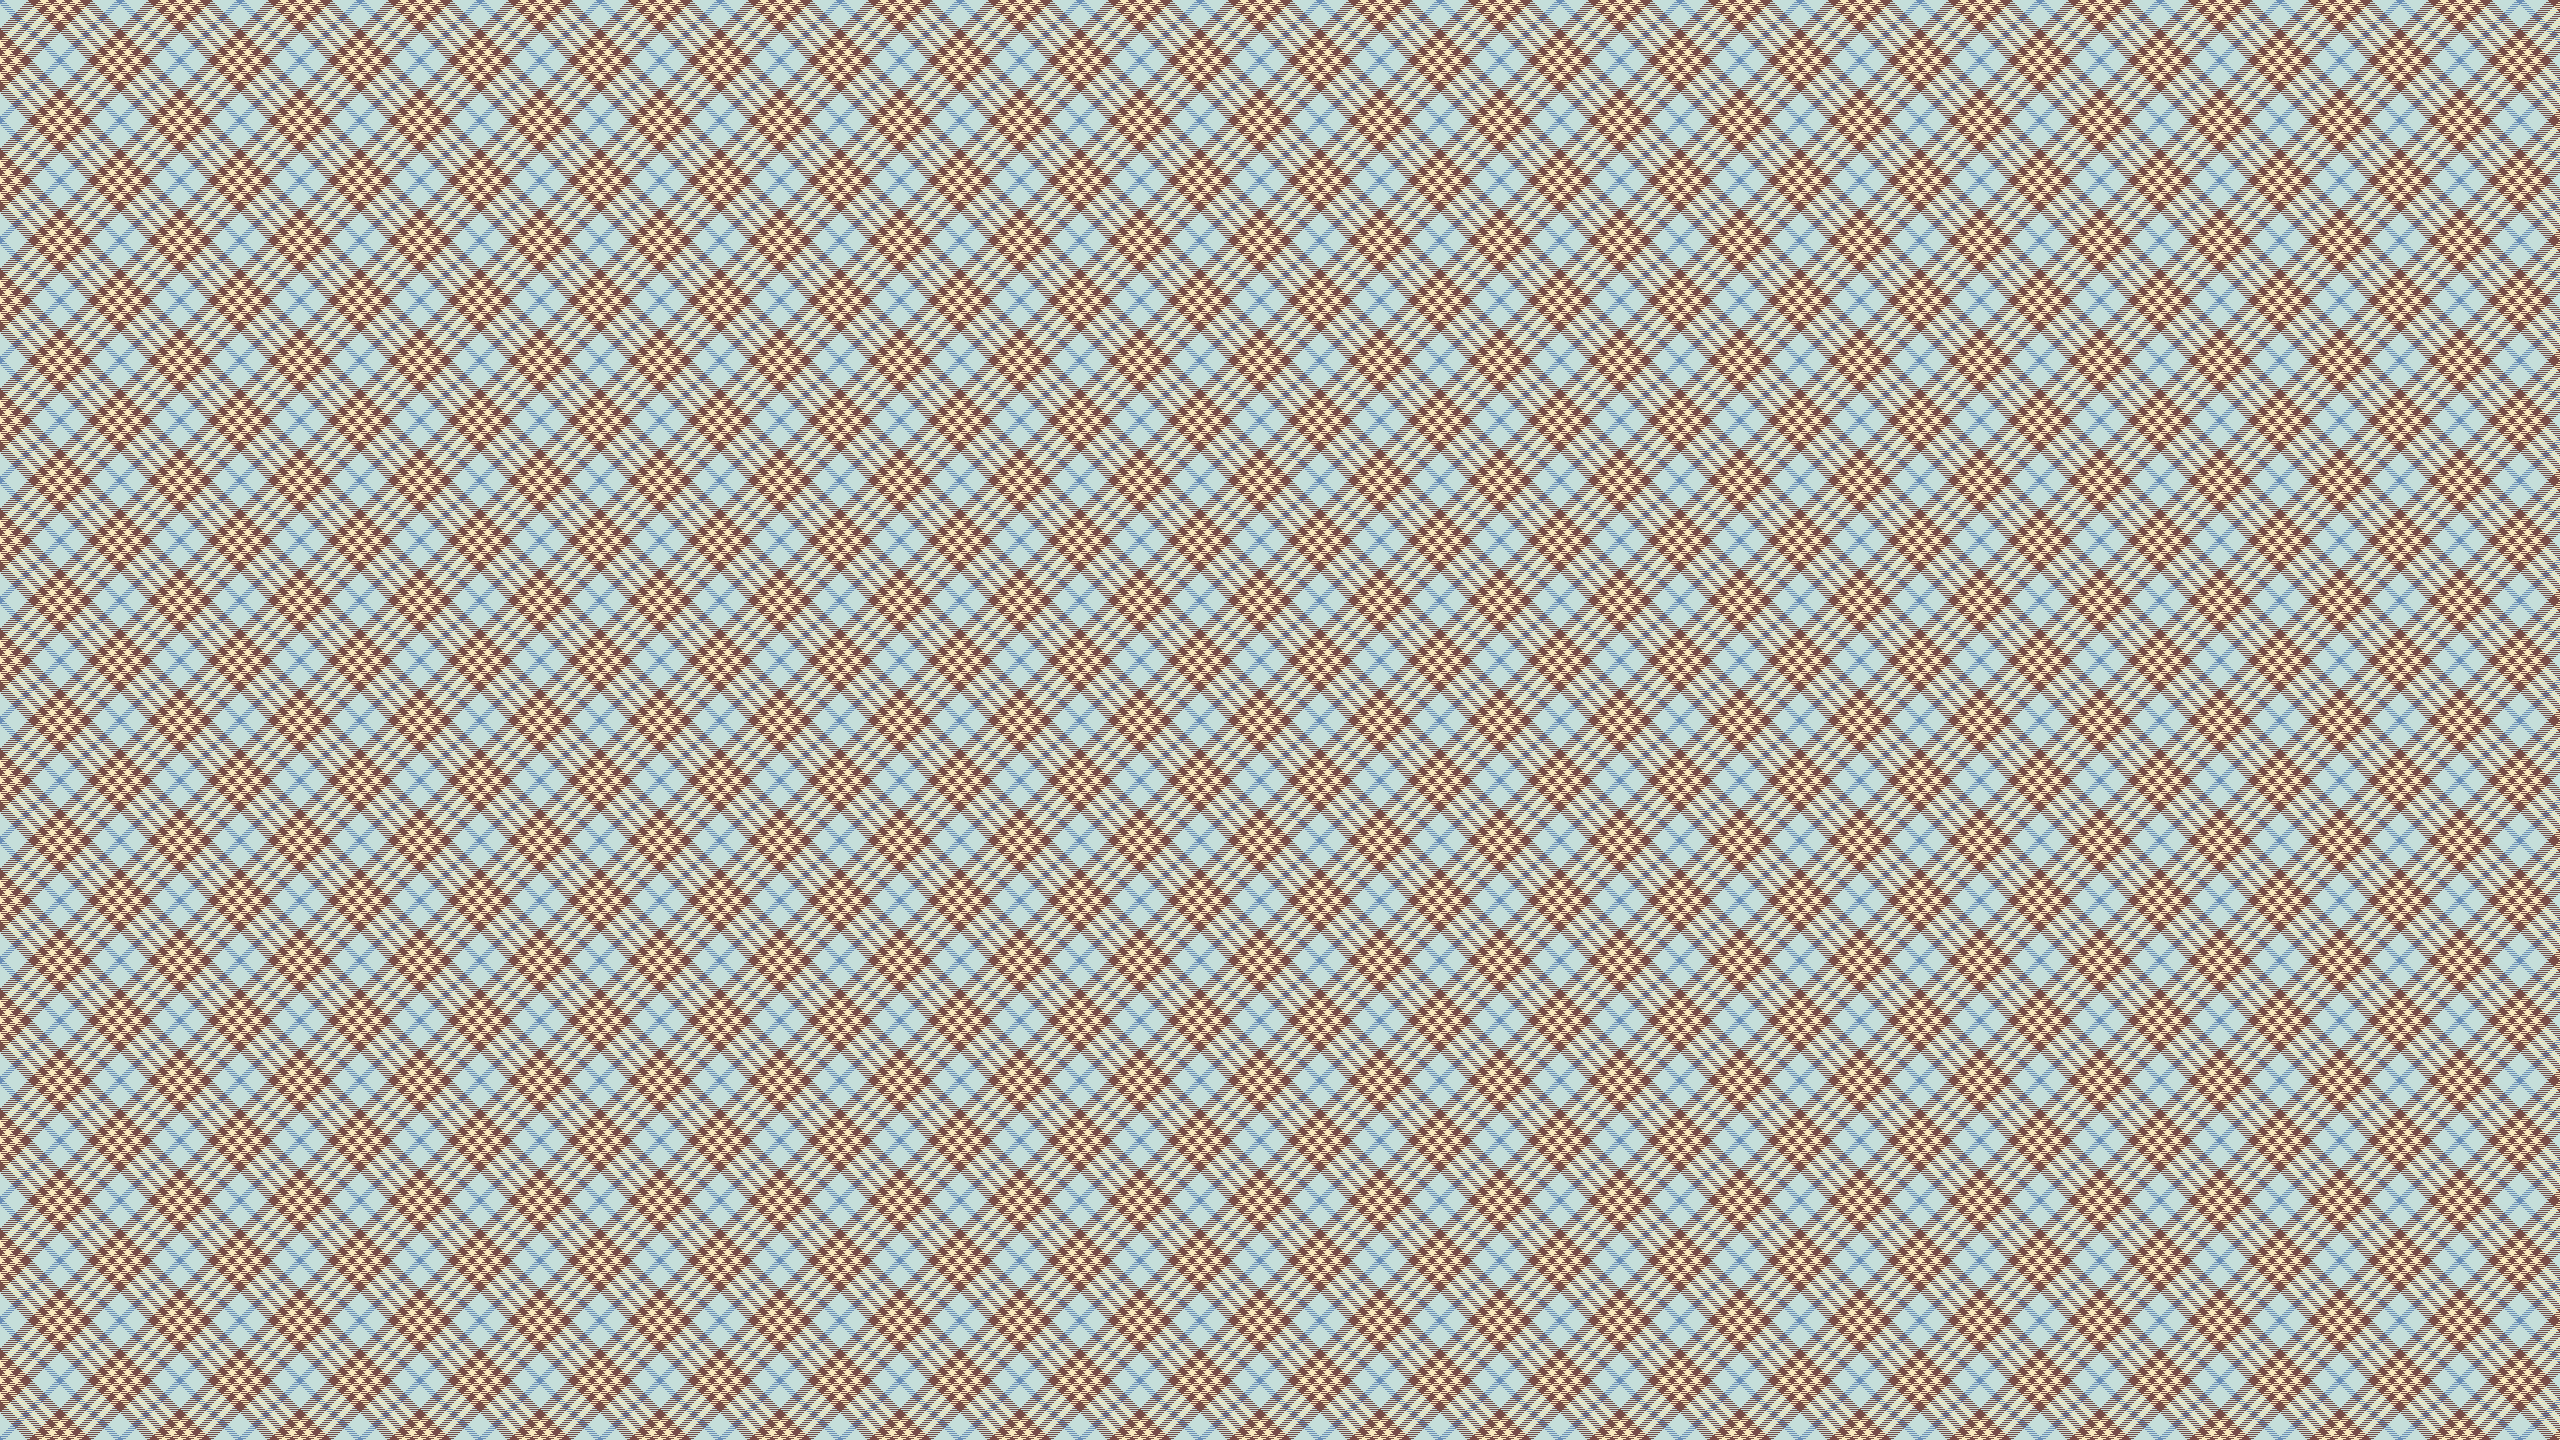 Plaid HD Wallpapers  Backgrounds  Wallpaper  2560x1440